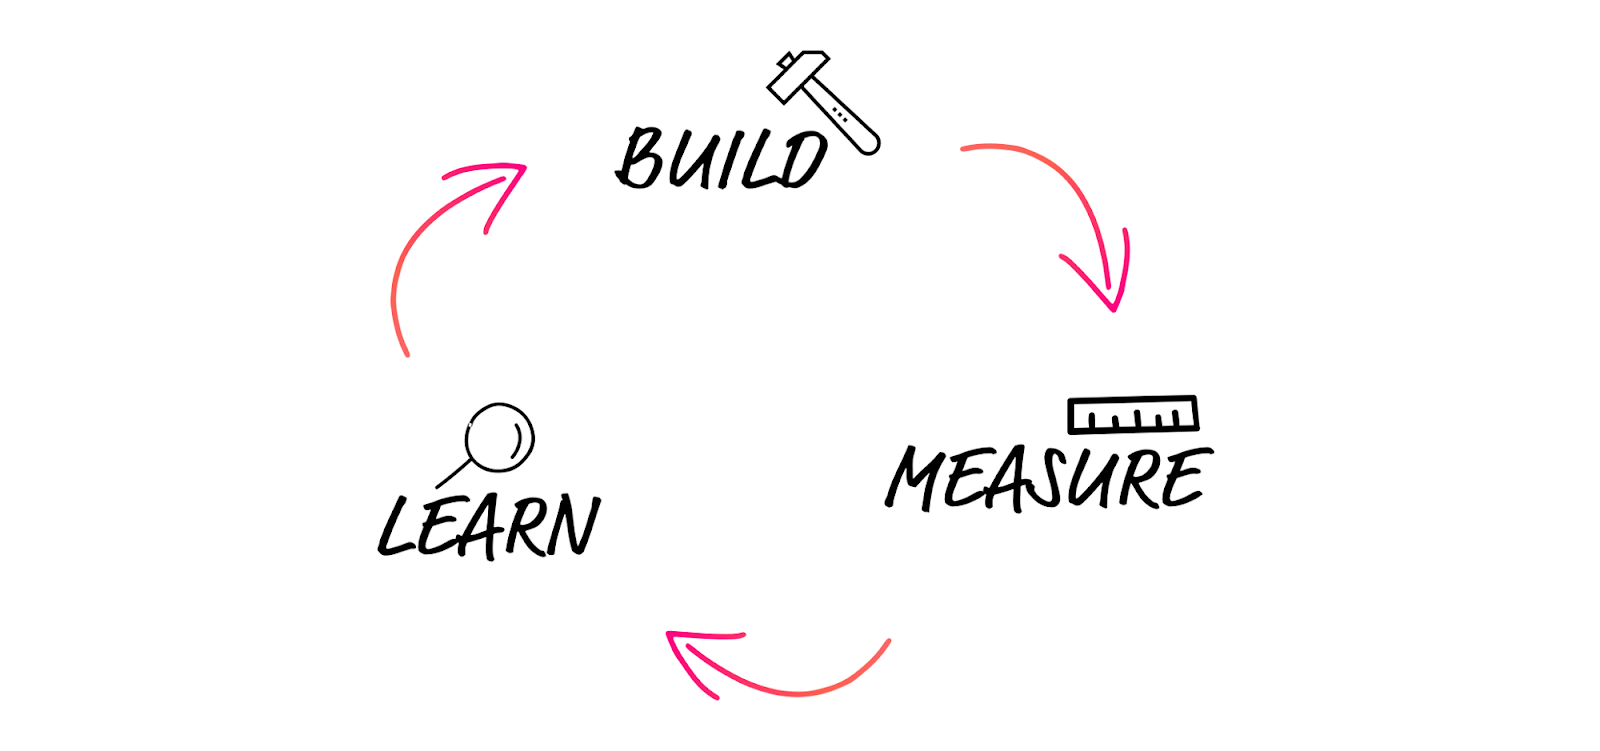 A visualization of Lean UX process (also known as Lean UX cycle) focuses on iterating toward a solution.